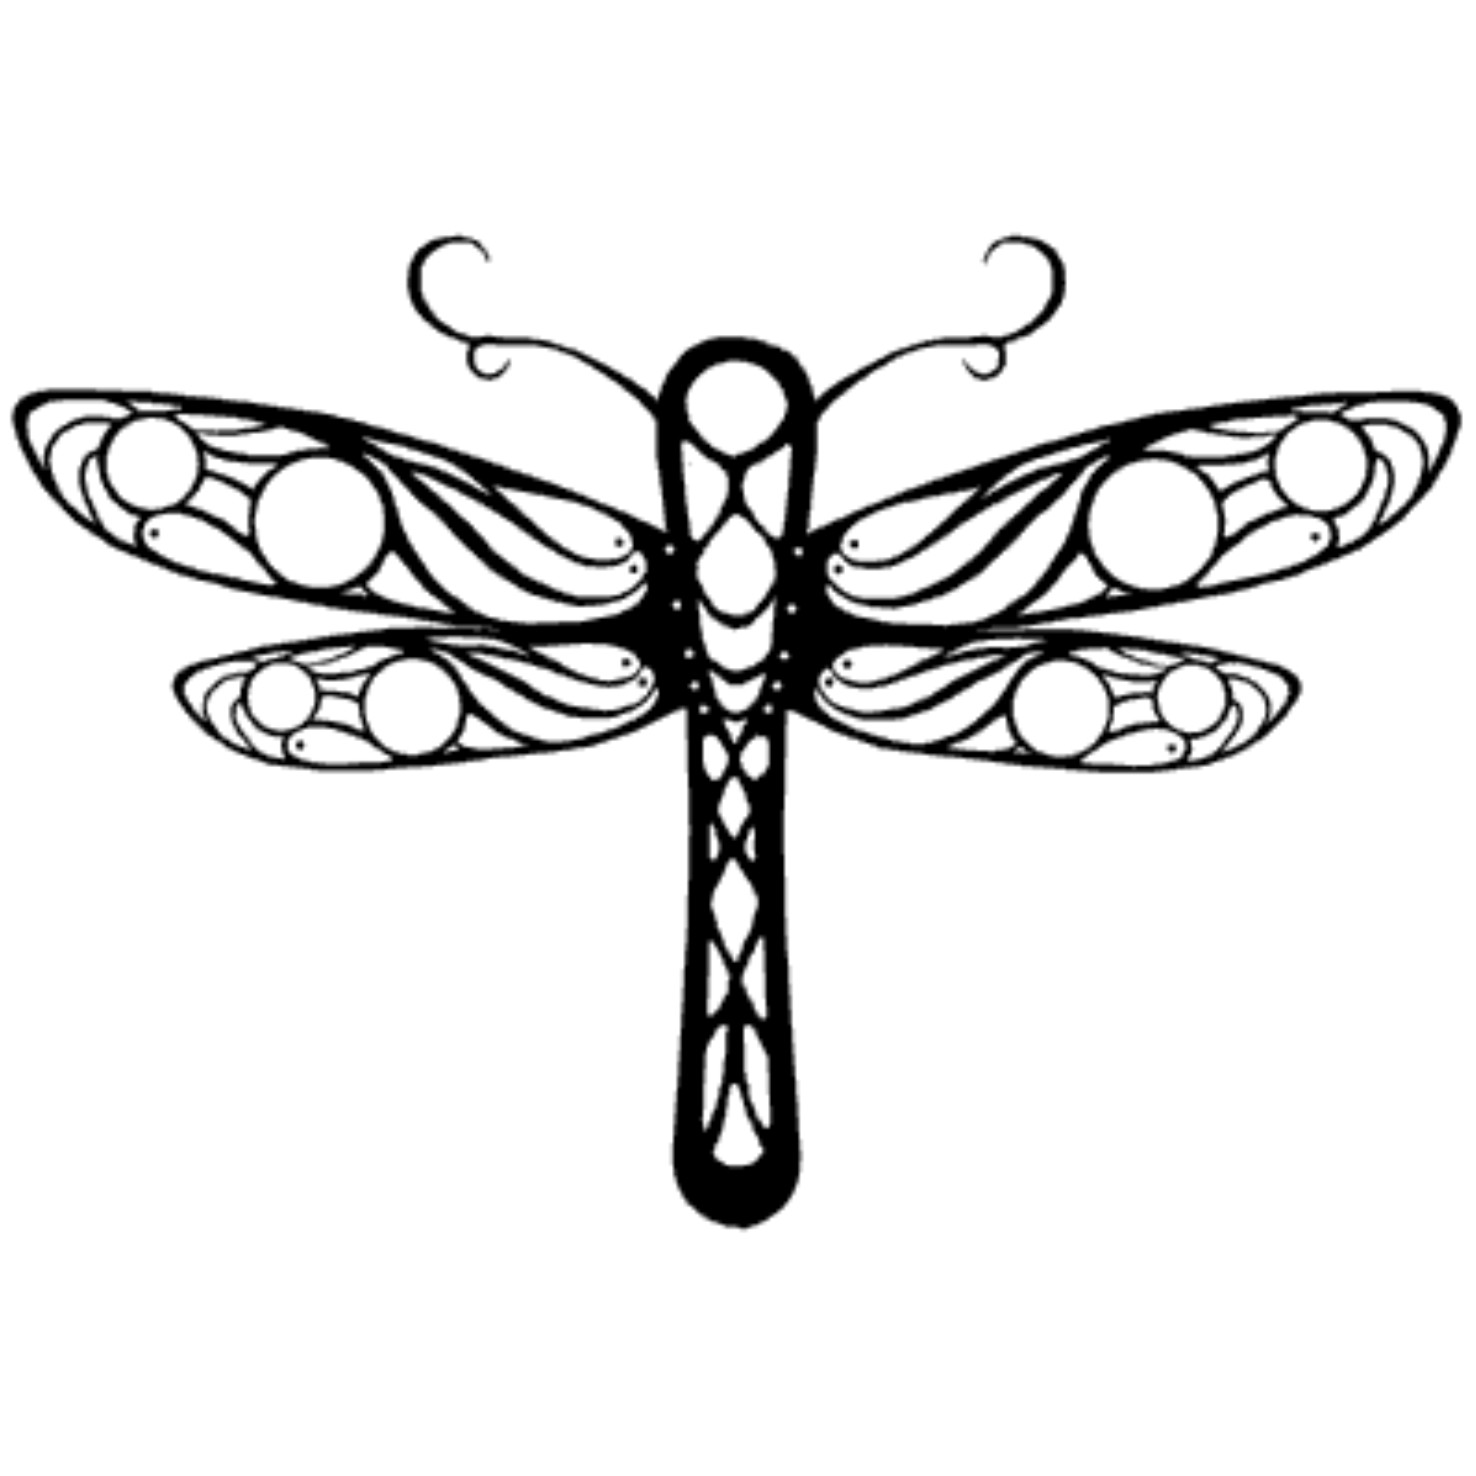 Cute Dragonfly Drawing at GetDrawings.com | Free for personal use ...